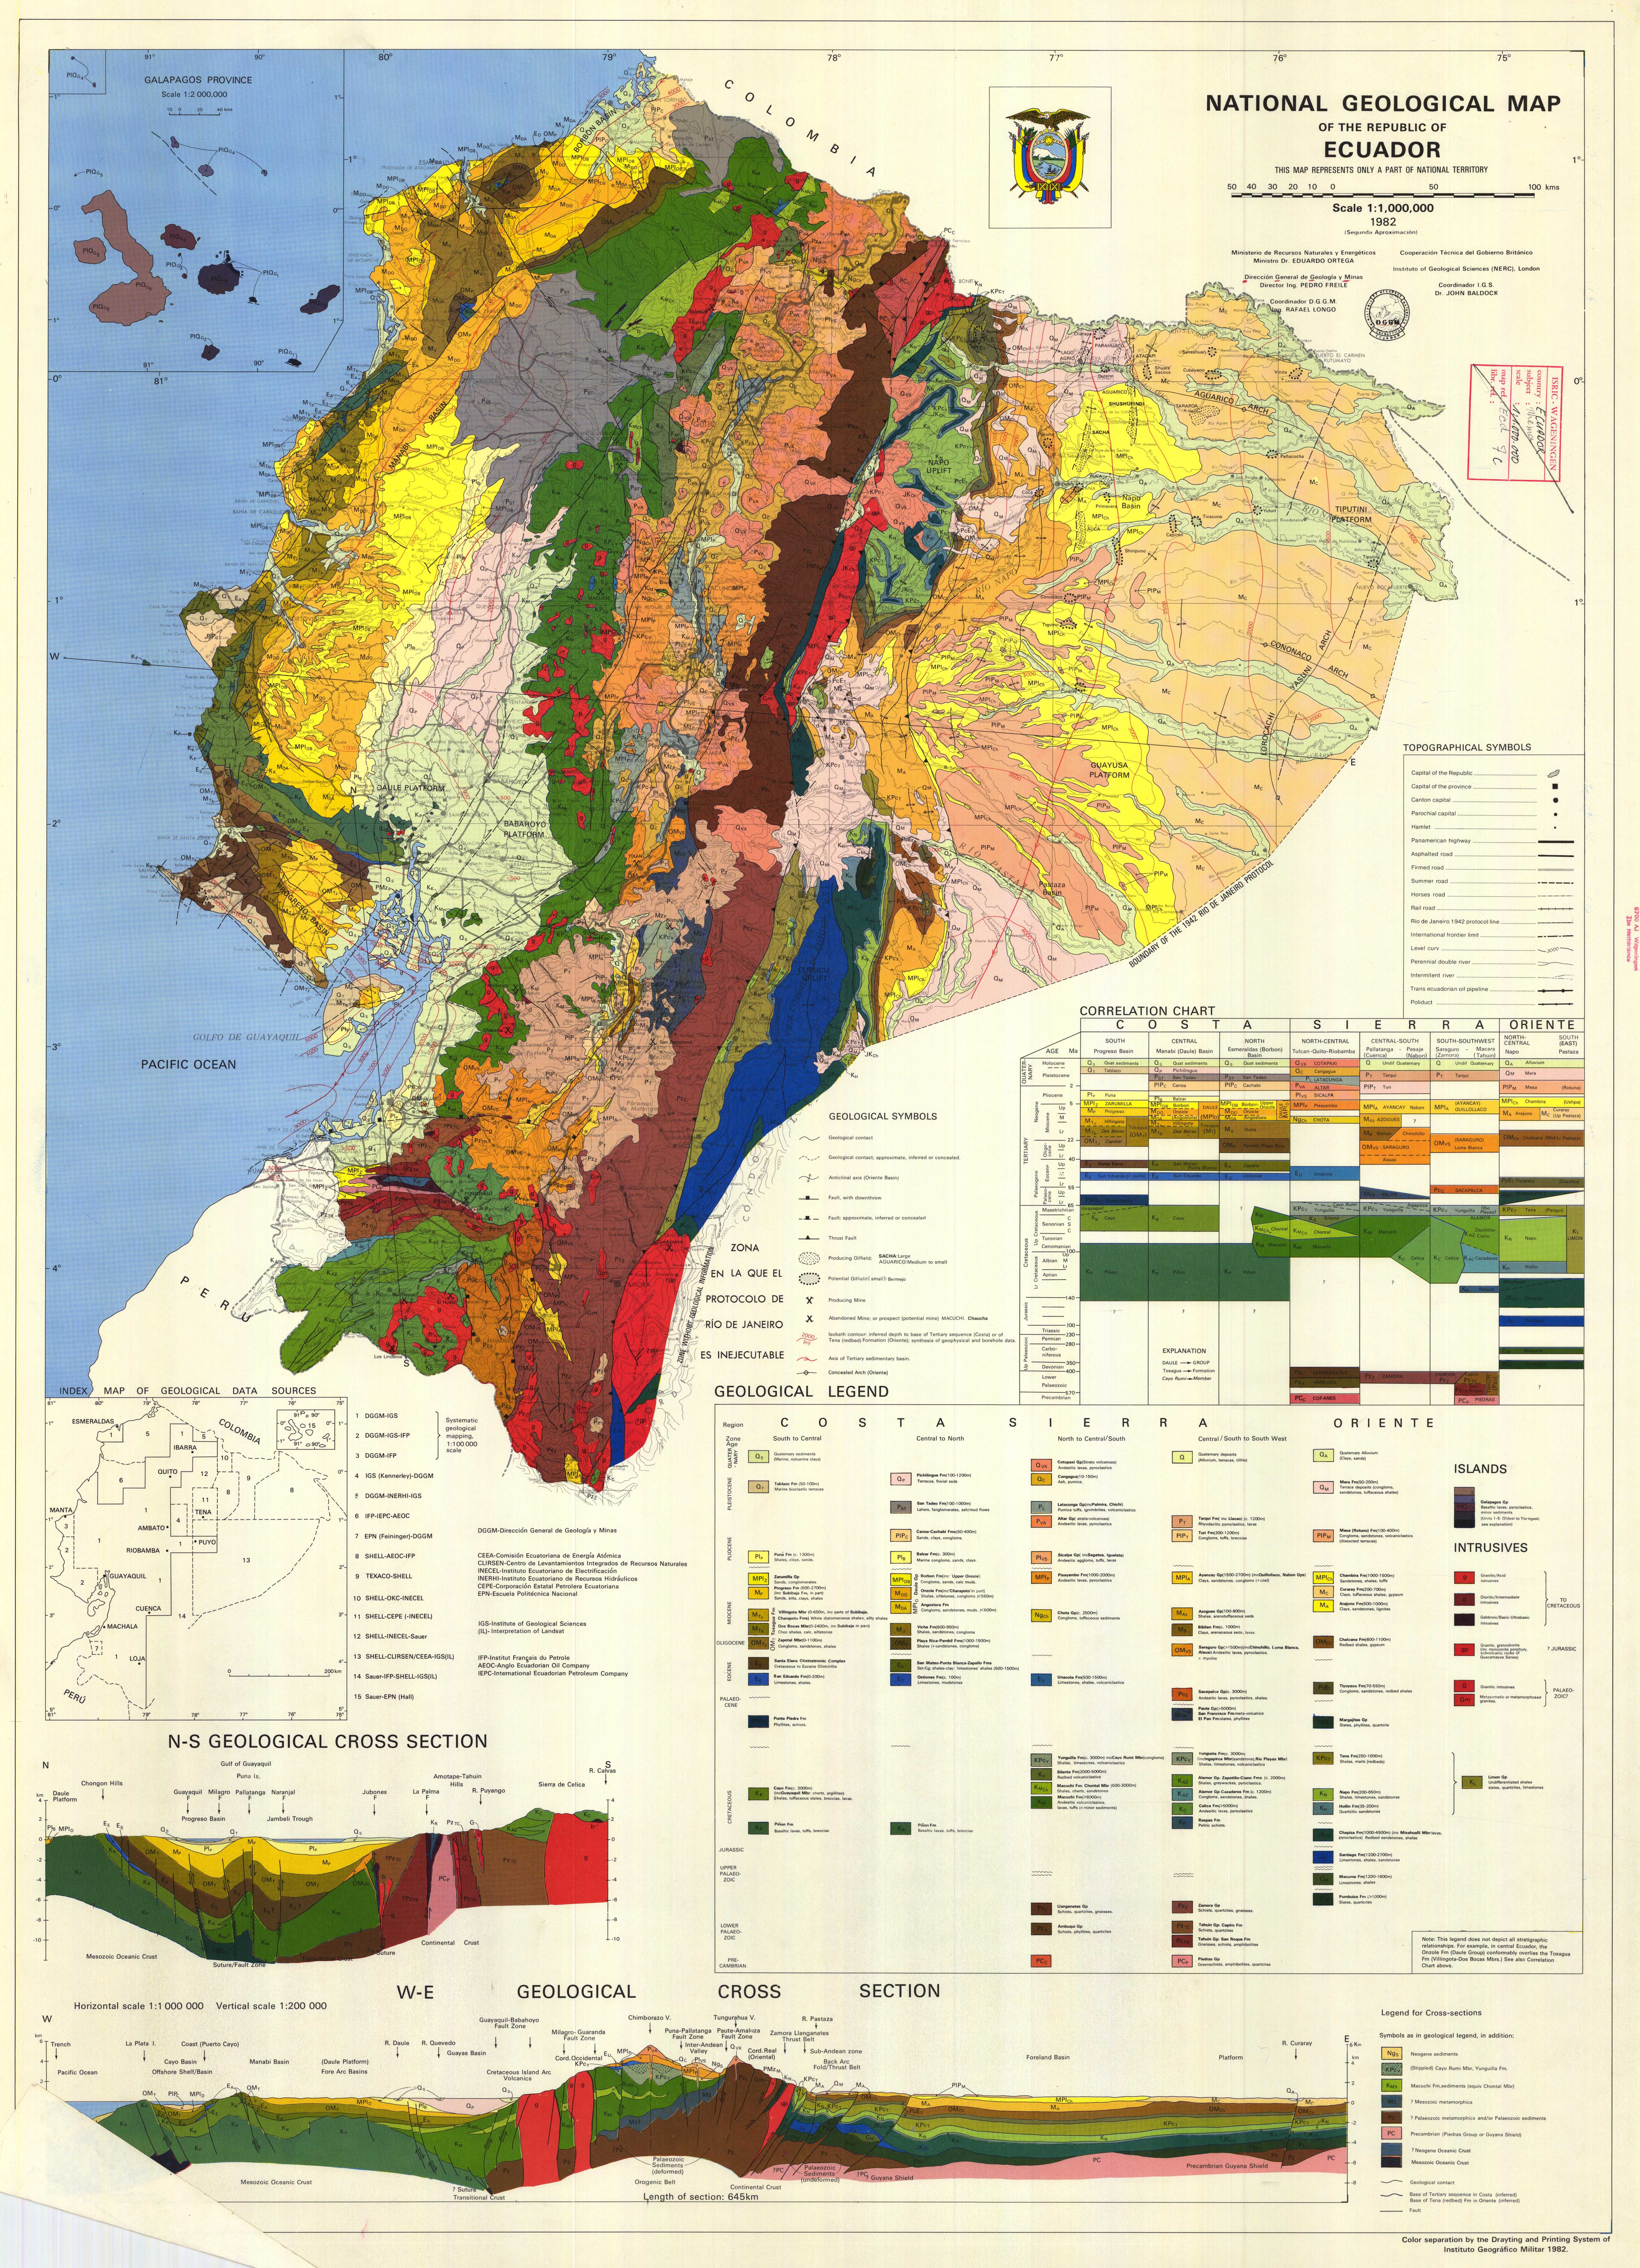 National Geological Map of the Republic of Ecuador including